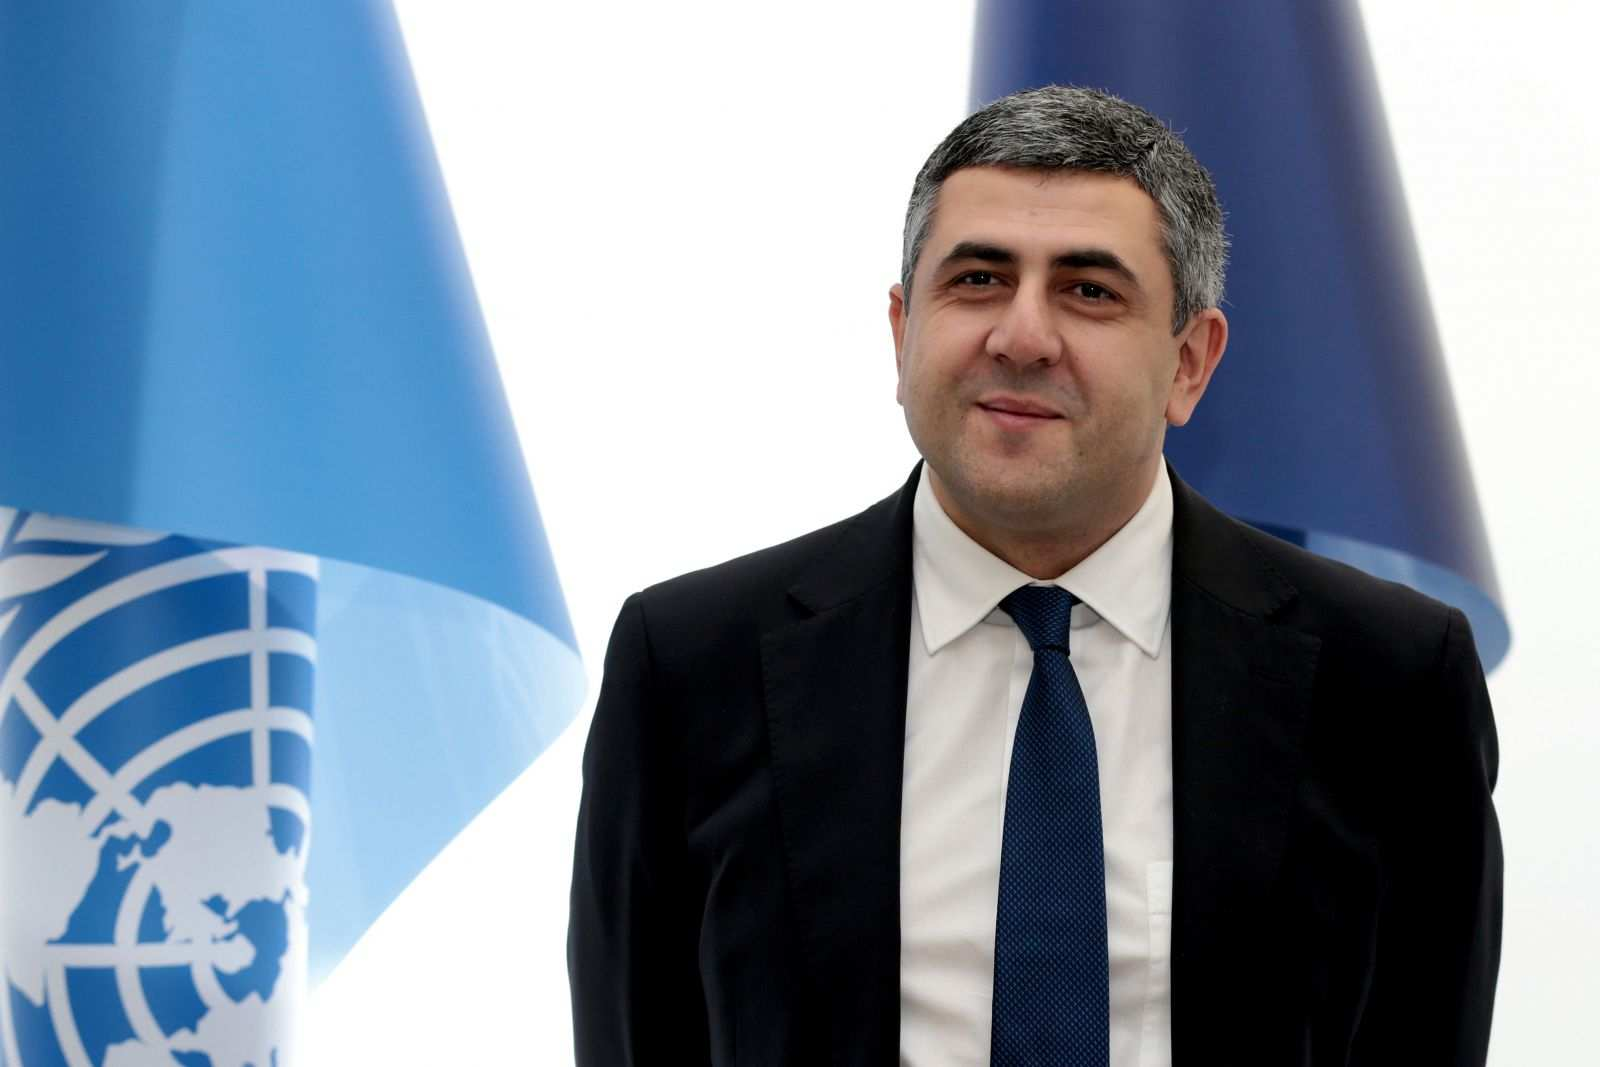 Pololikashvili: As we work to restart tourism, we must recognise that restrictions are just one part of the solution